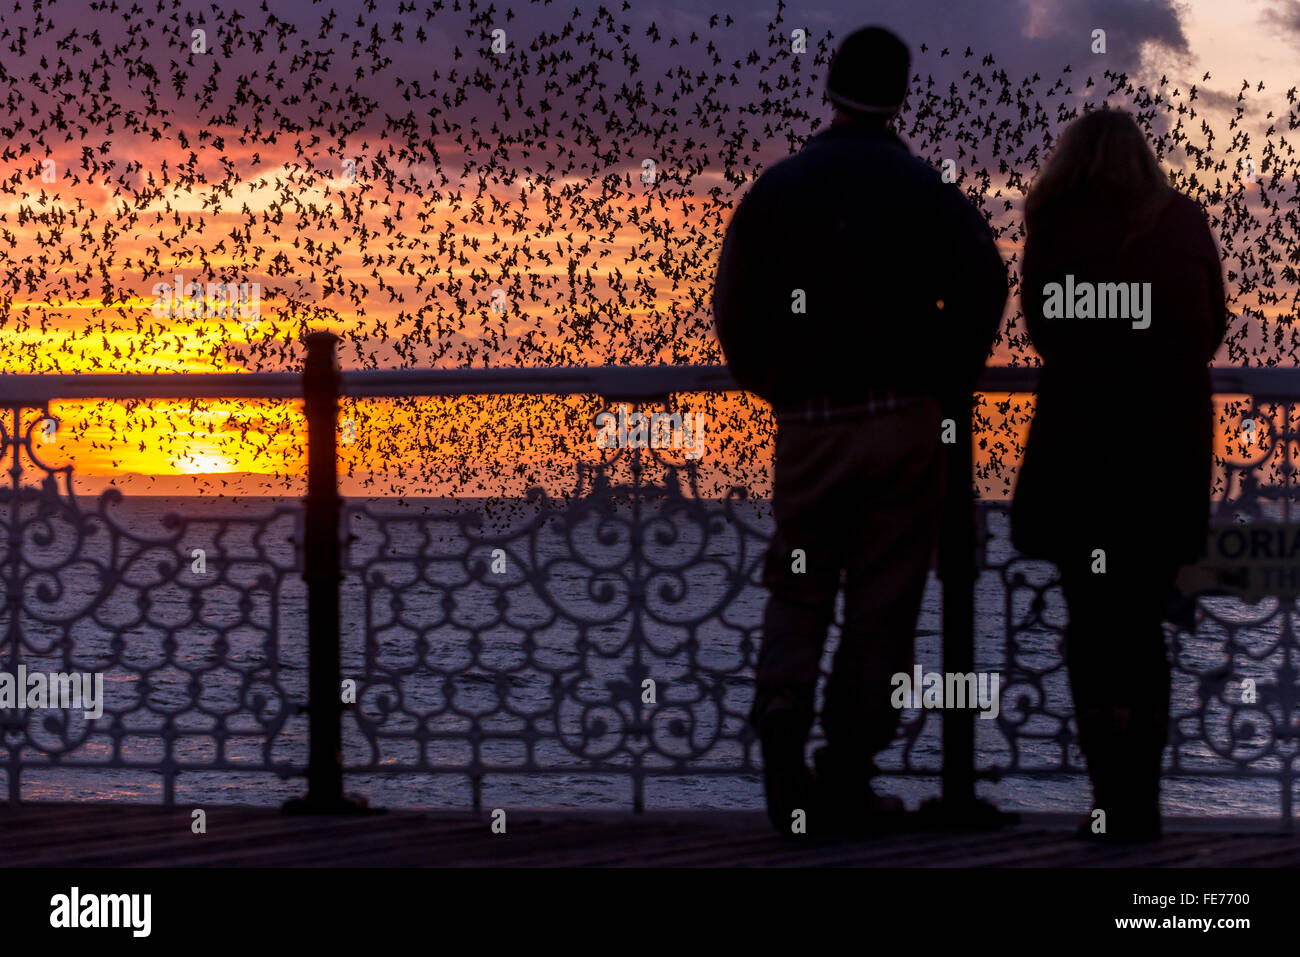 People watching the nightly murmuration of starlings at sunset from Palace Pier, Brighton. - Stock Image